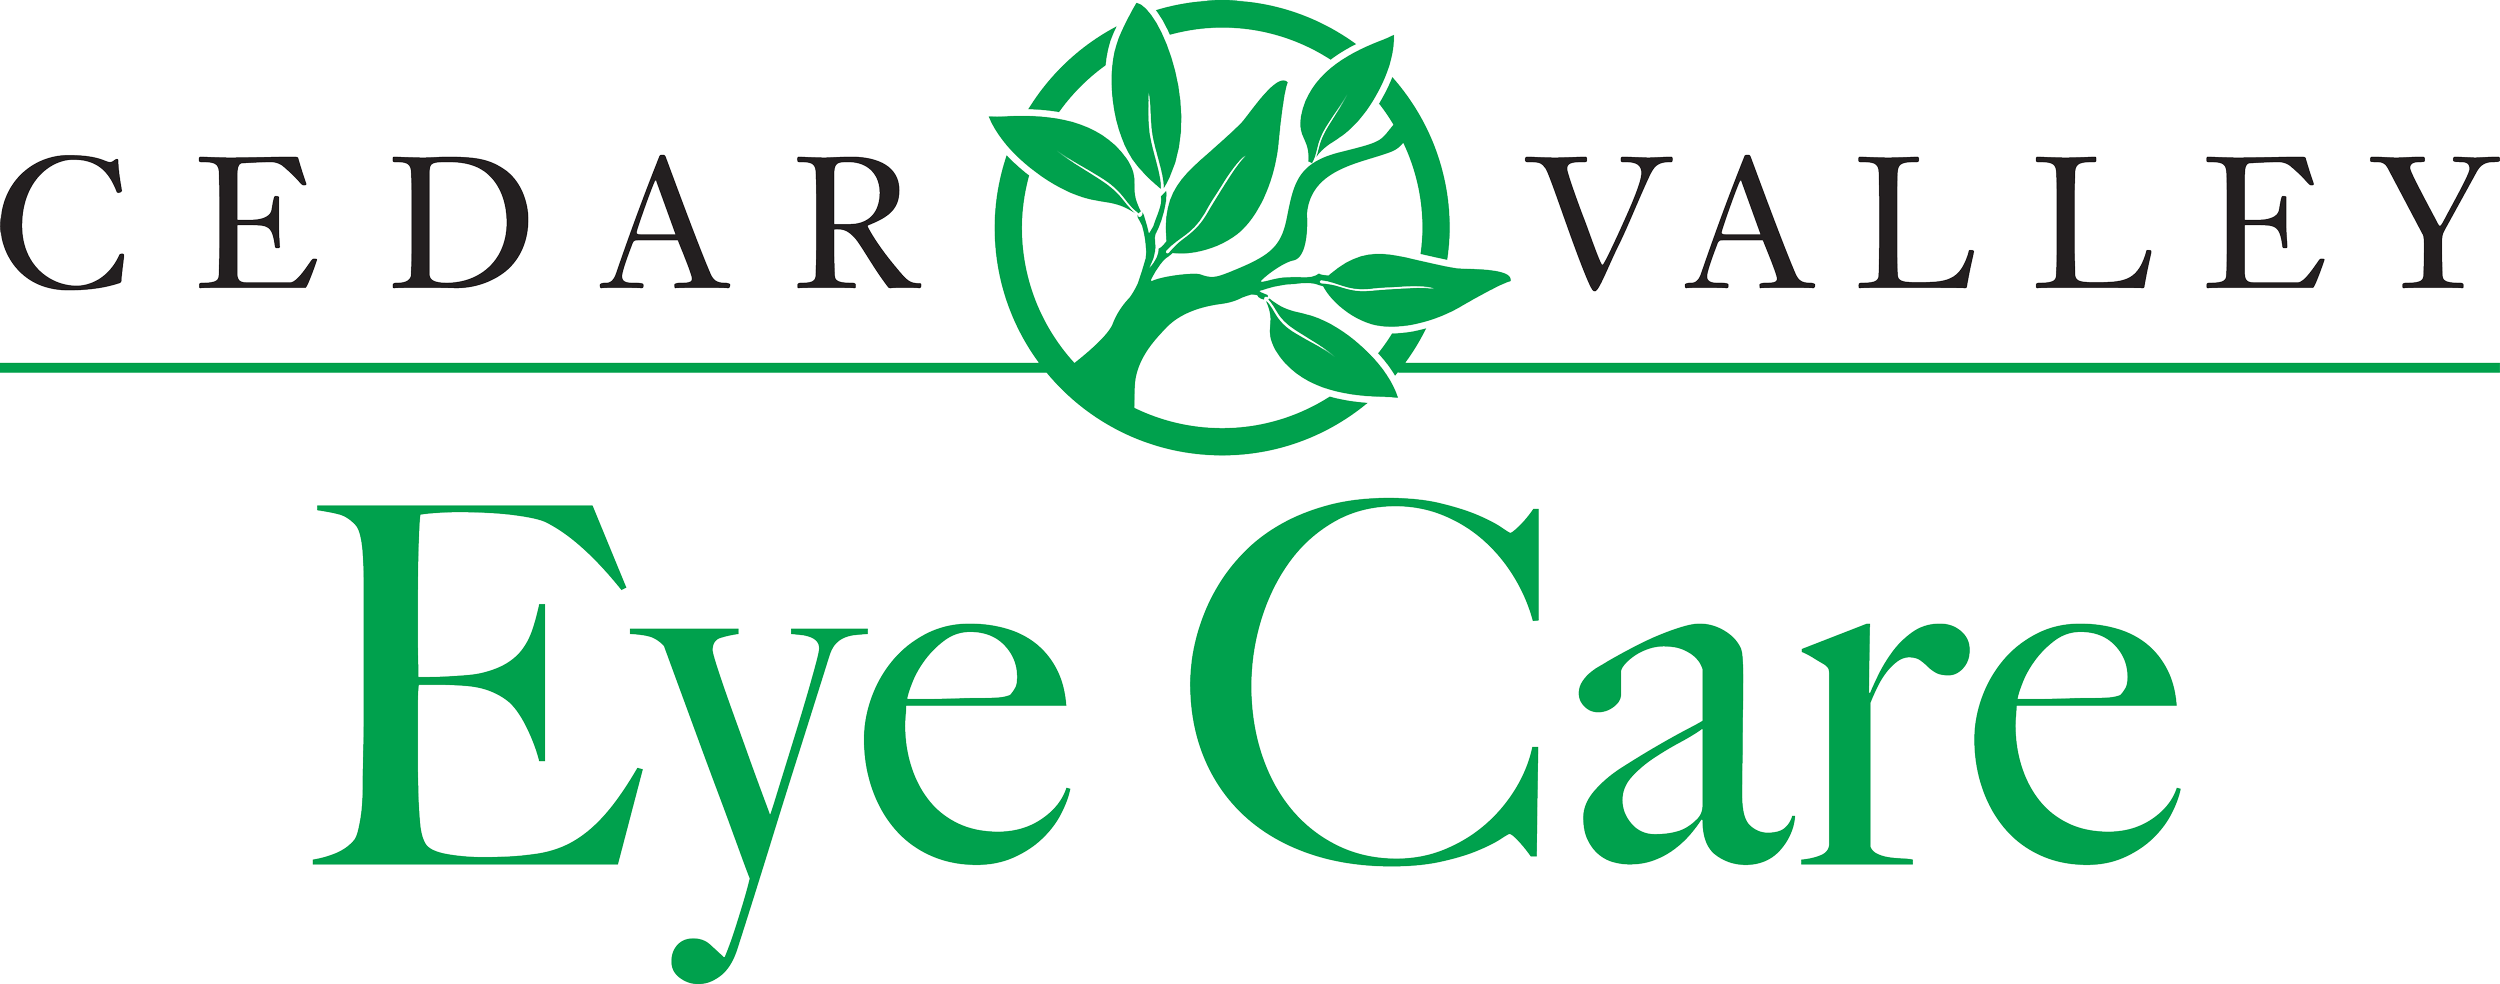 Cedar Valley Eye Care Logo